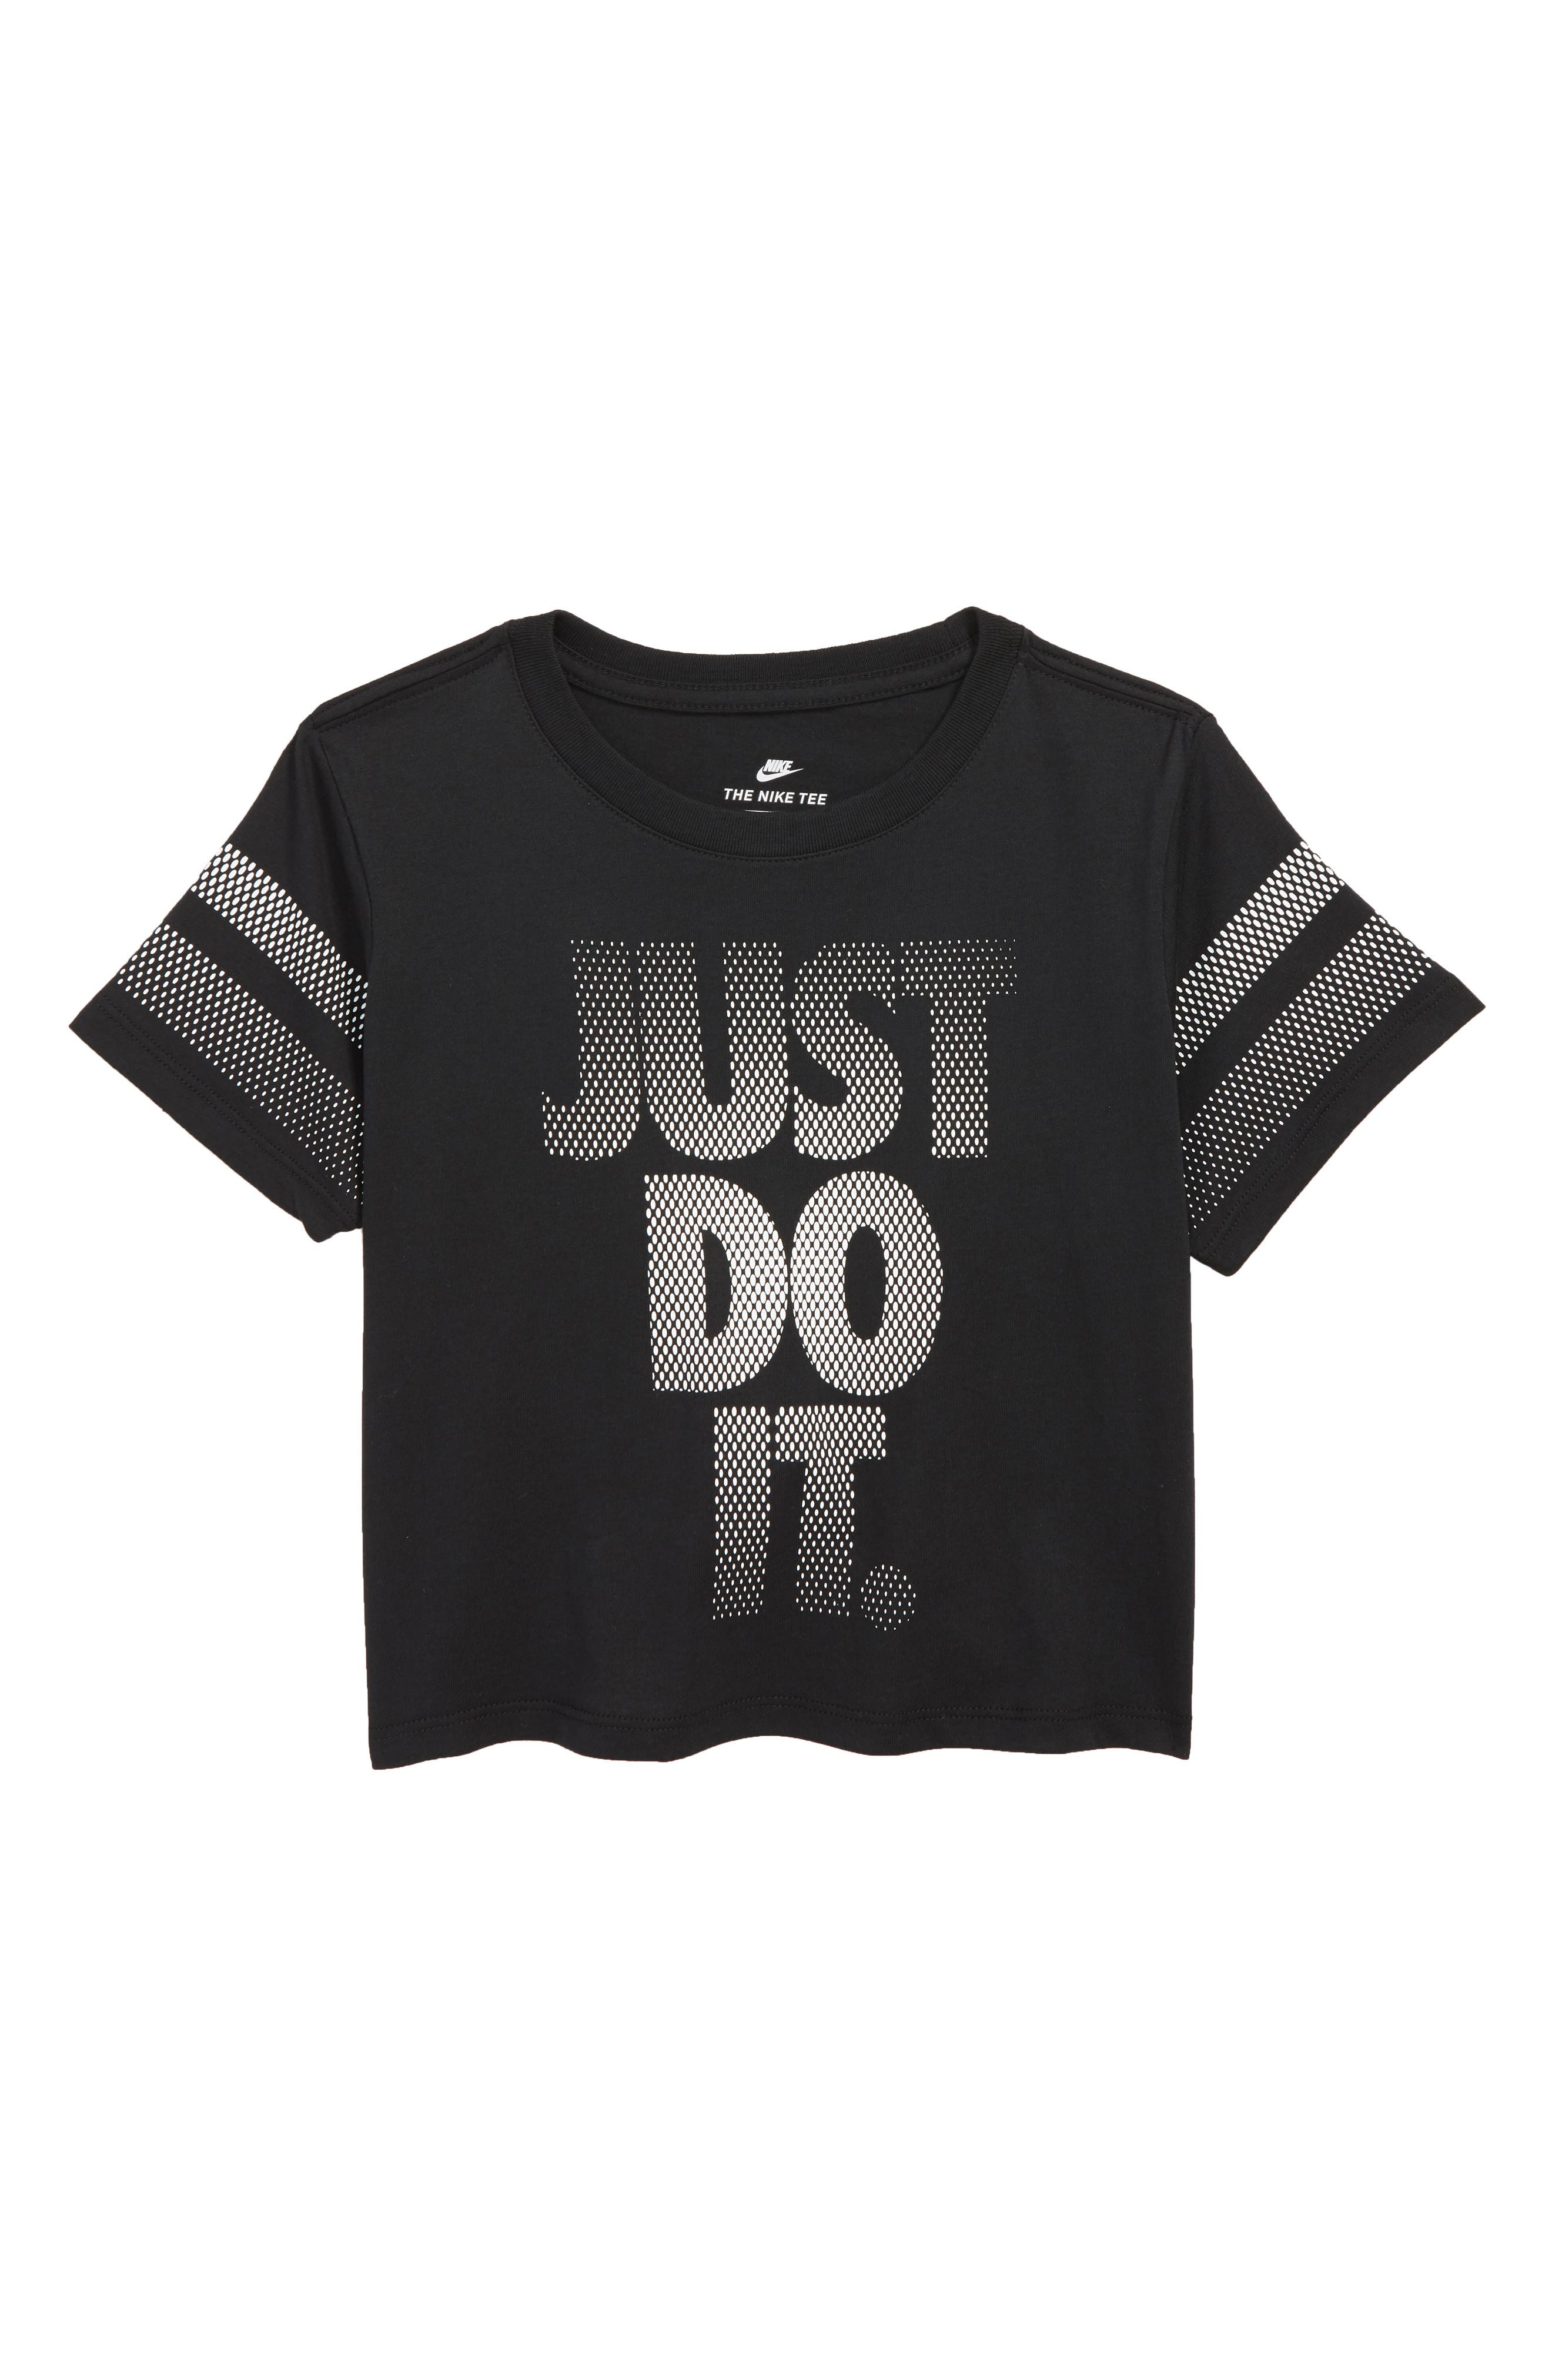 Sportswear Just Do It Tee,                             Main thumbnail 1, color,                             011